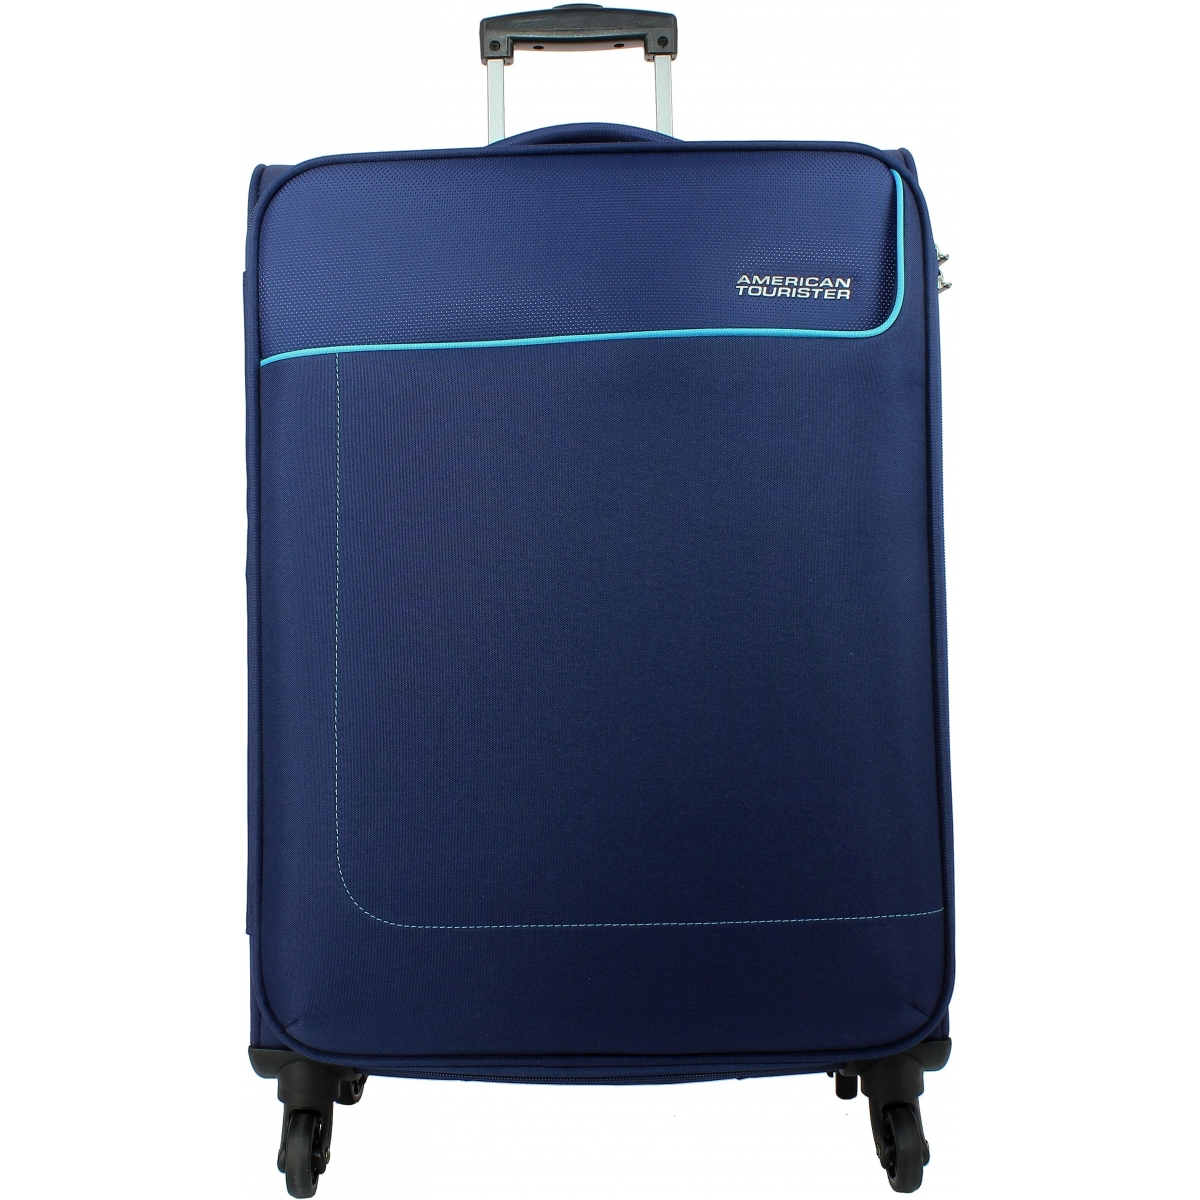 valise american tourister funshine 66cm funshine08 couleur principale orion blue solde. Black Bedroom Furniture Sets. Home Design Ideas